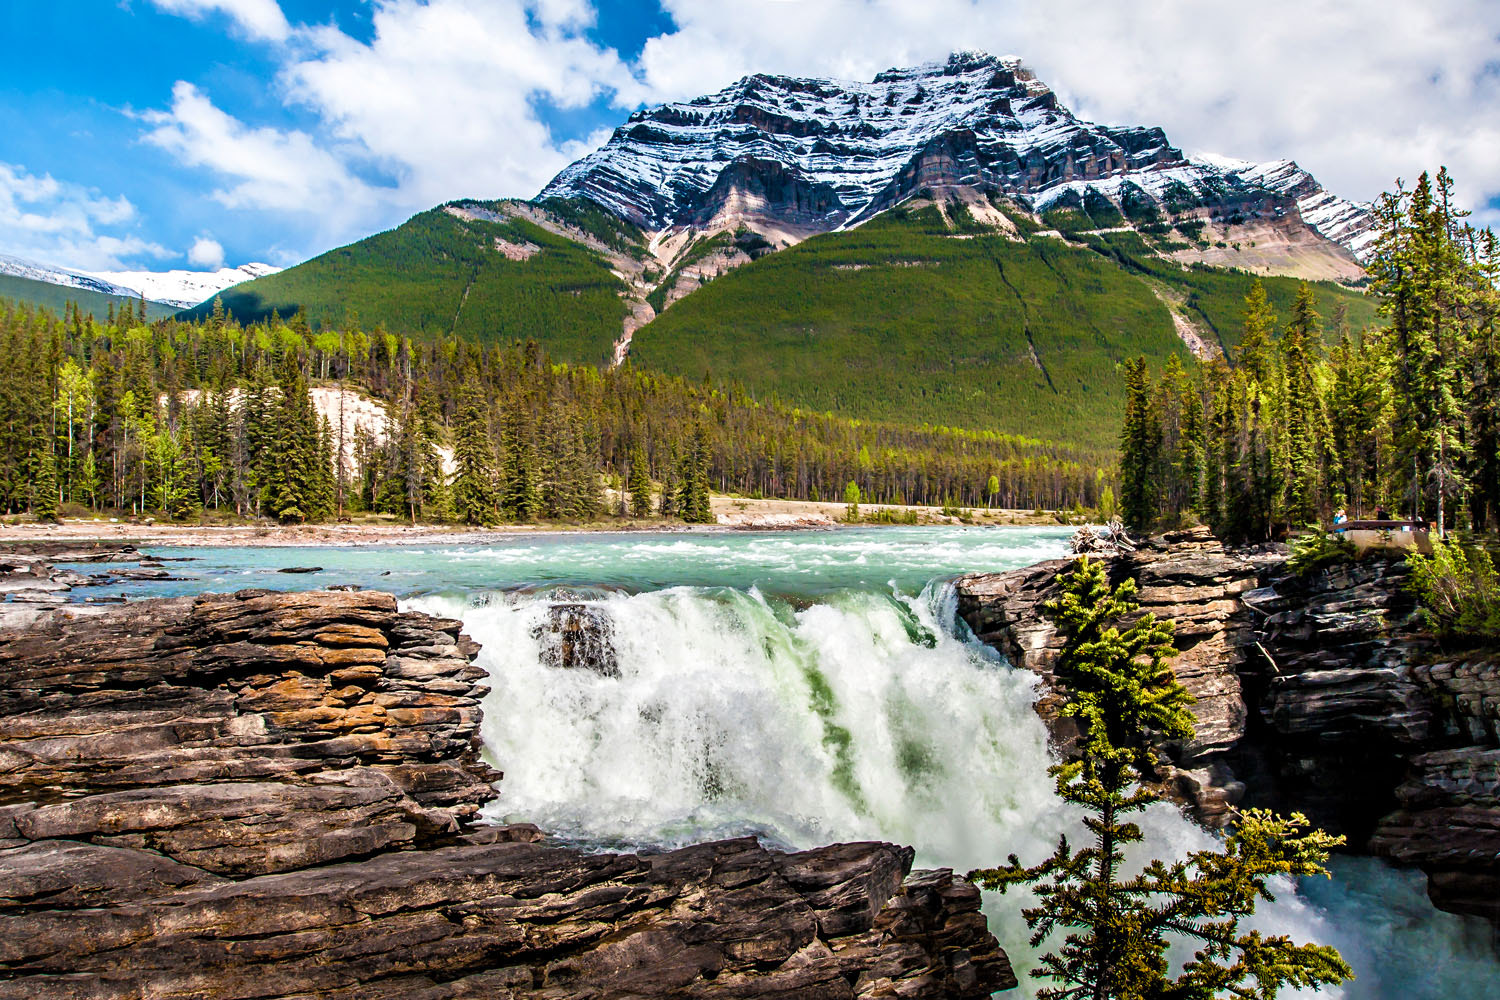 Photograph Athabasca Falls by Jesson Wong on 500px